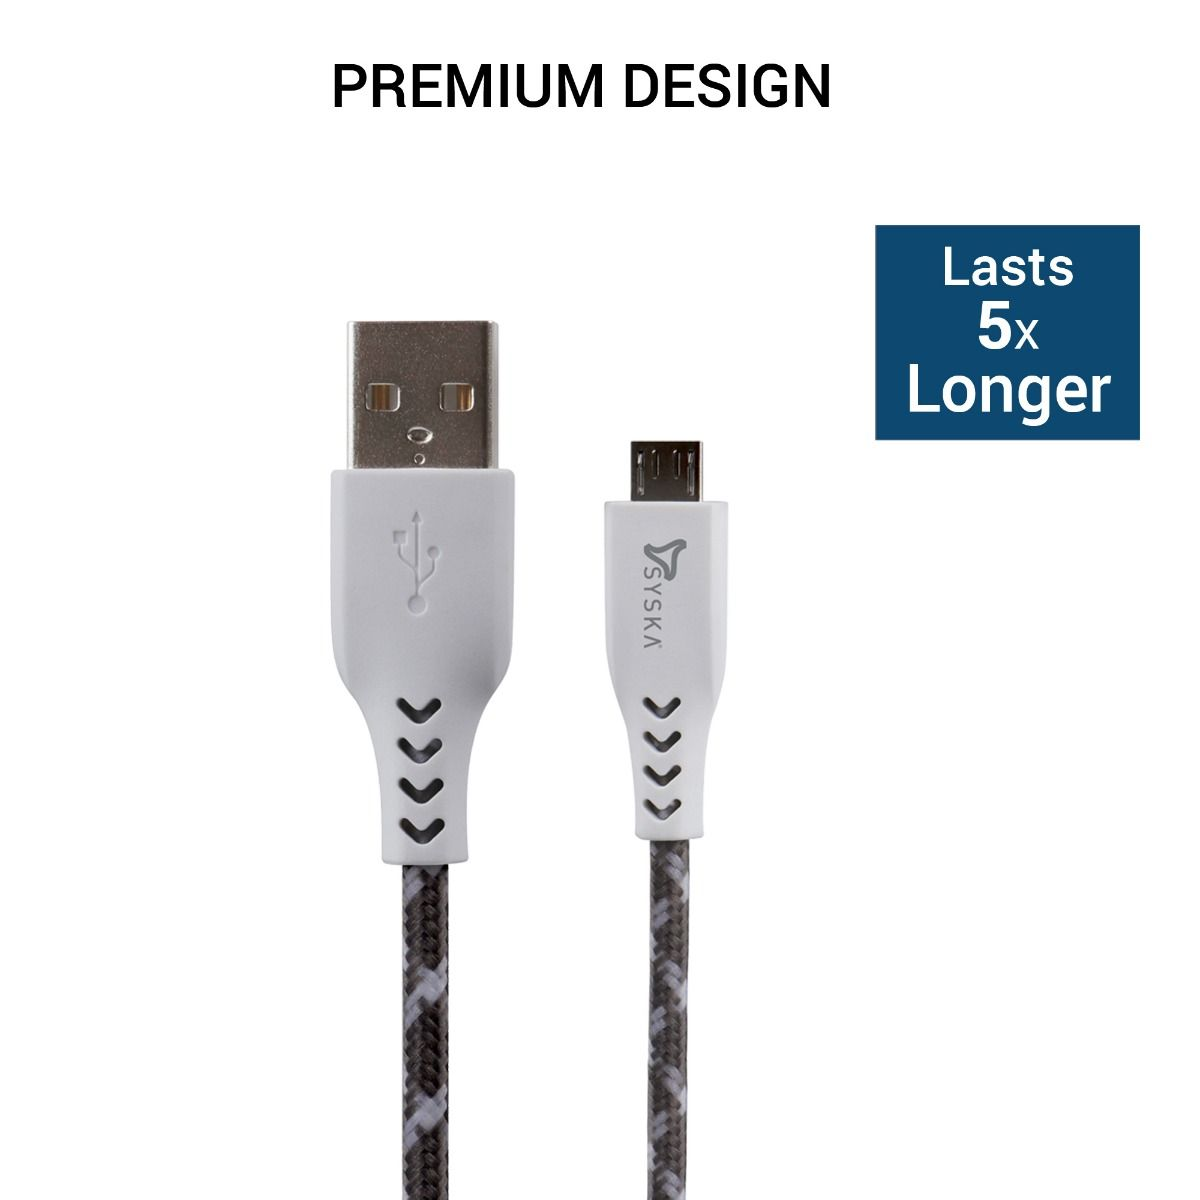 Fastlink Lightning Charging Cable CCAP50